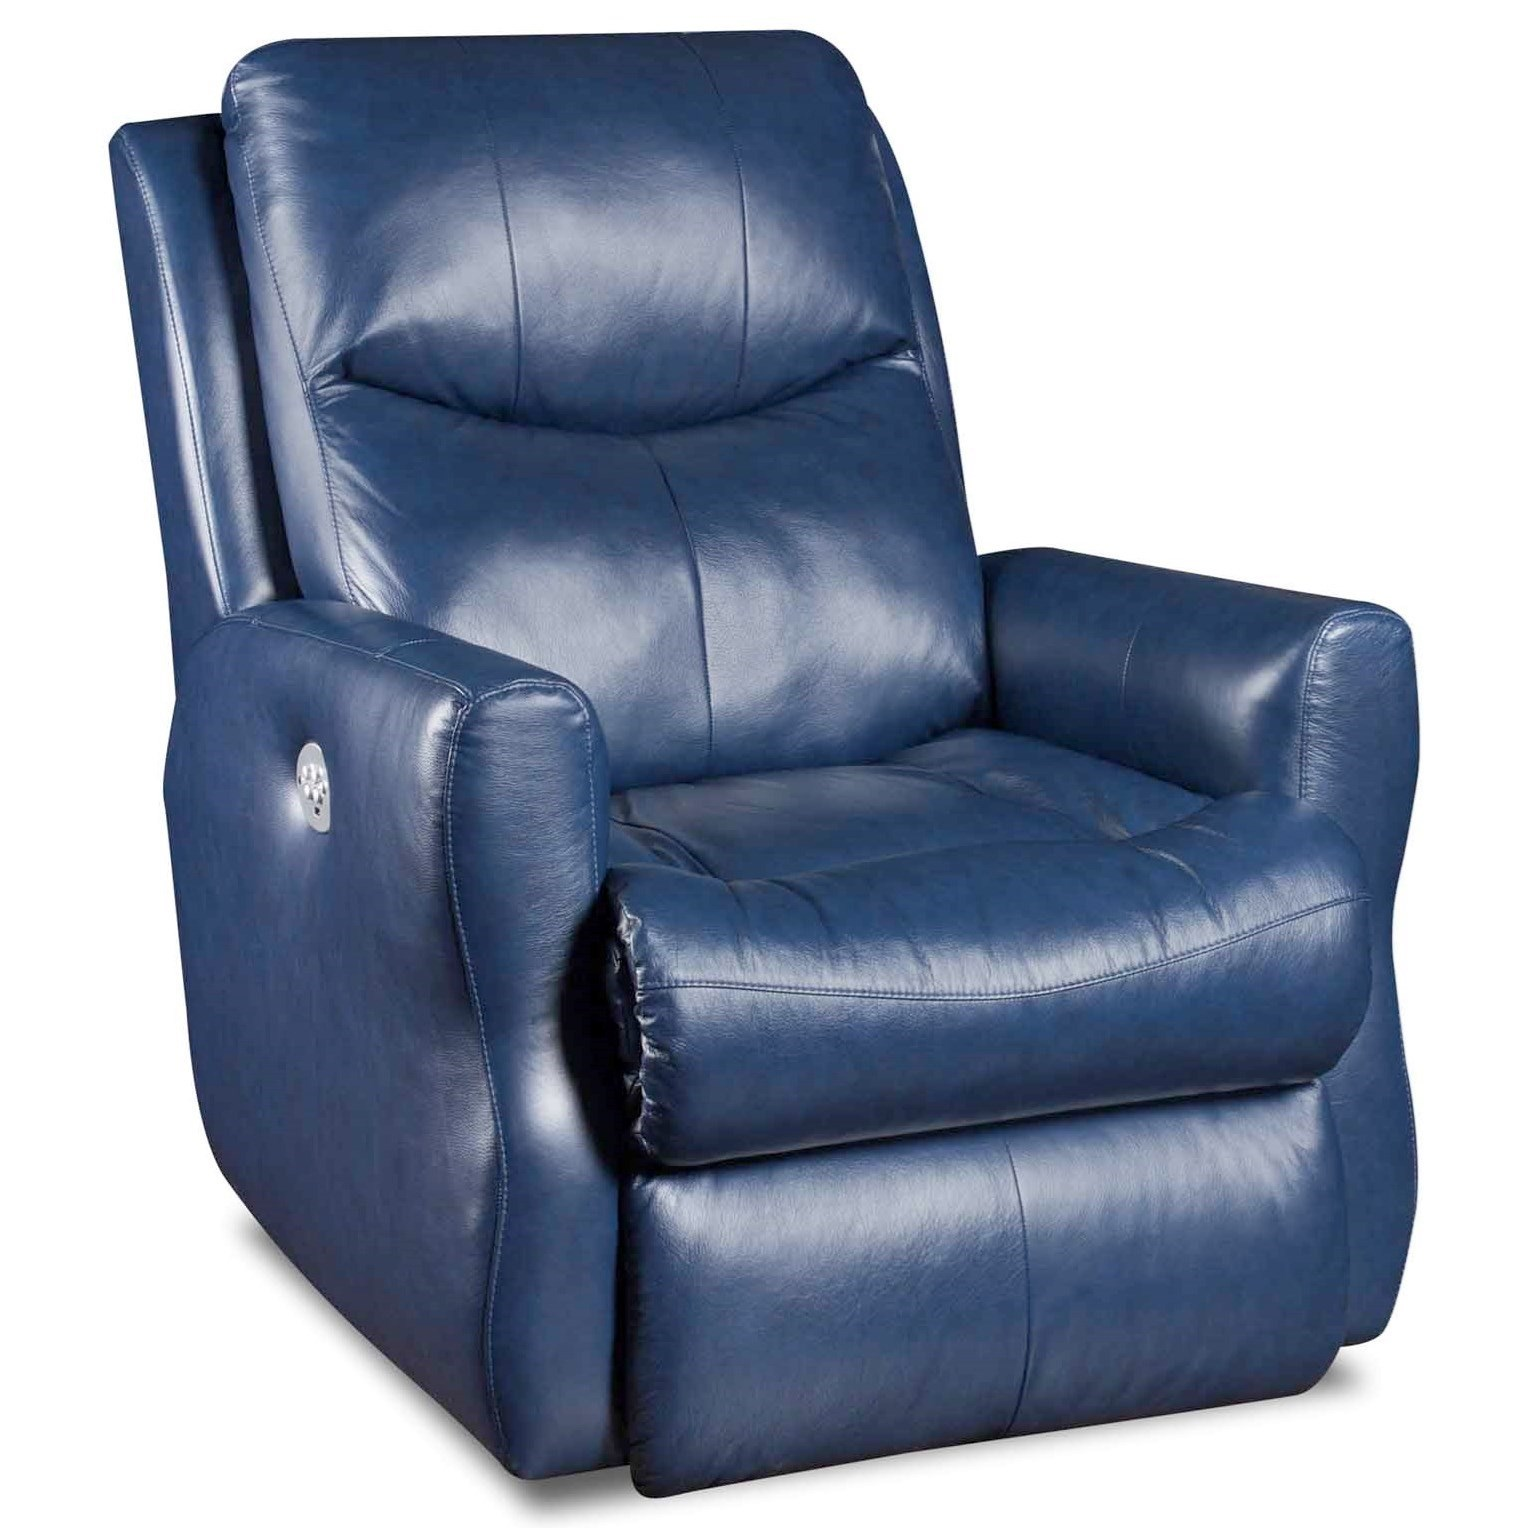 southern motion recliners fame layflat lift chair with power headrest - Recliner Lift Chairs